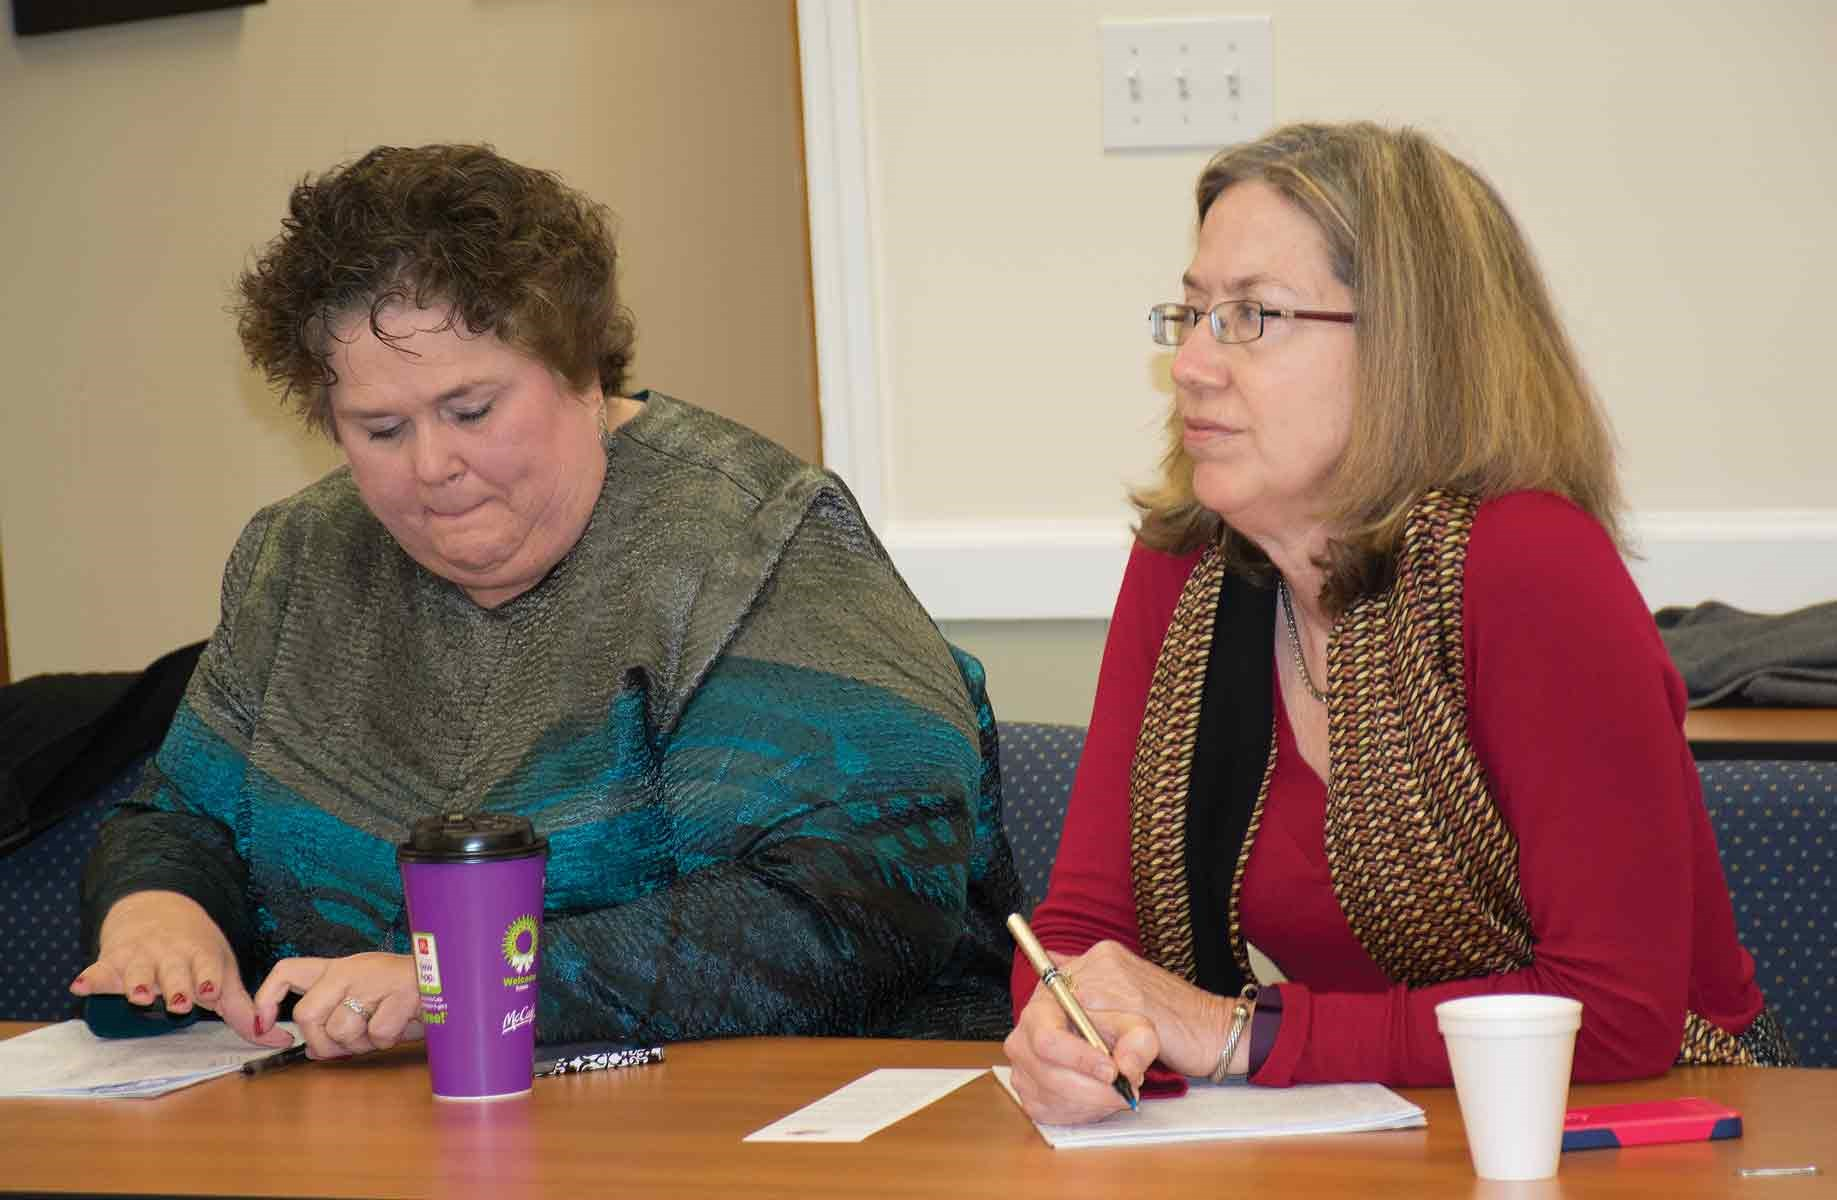 Kentucky Education Association Executive Director Mary Ann Blankenship (left) and Lynne Slone, legal counsel for the Kentucky Association of School Councils, take notes as OSBA's director of legislative services Damon Asbury and Sara Clark, the association's director of legal services, detail recent reform law passed to address numerous problems involving charter schools operating in Ohio.